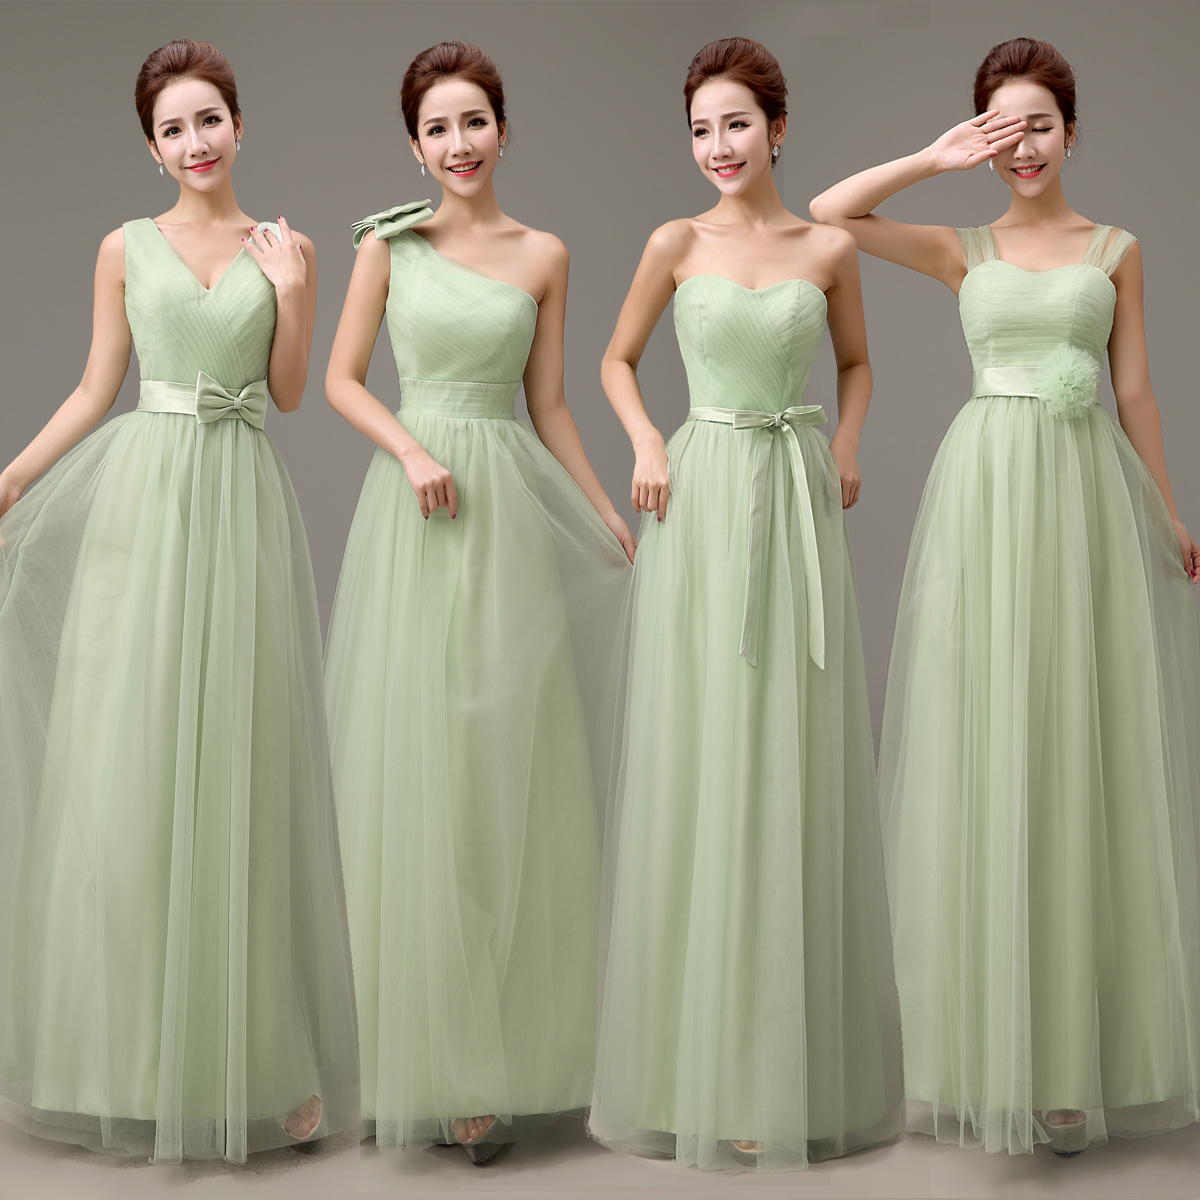 Dusty Green Bridesmaid Dress Tulle Sage Bridesmaid Dress